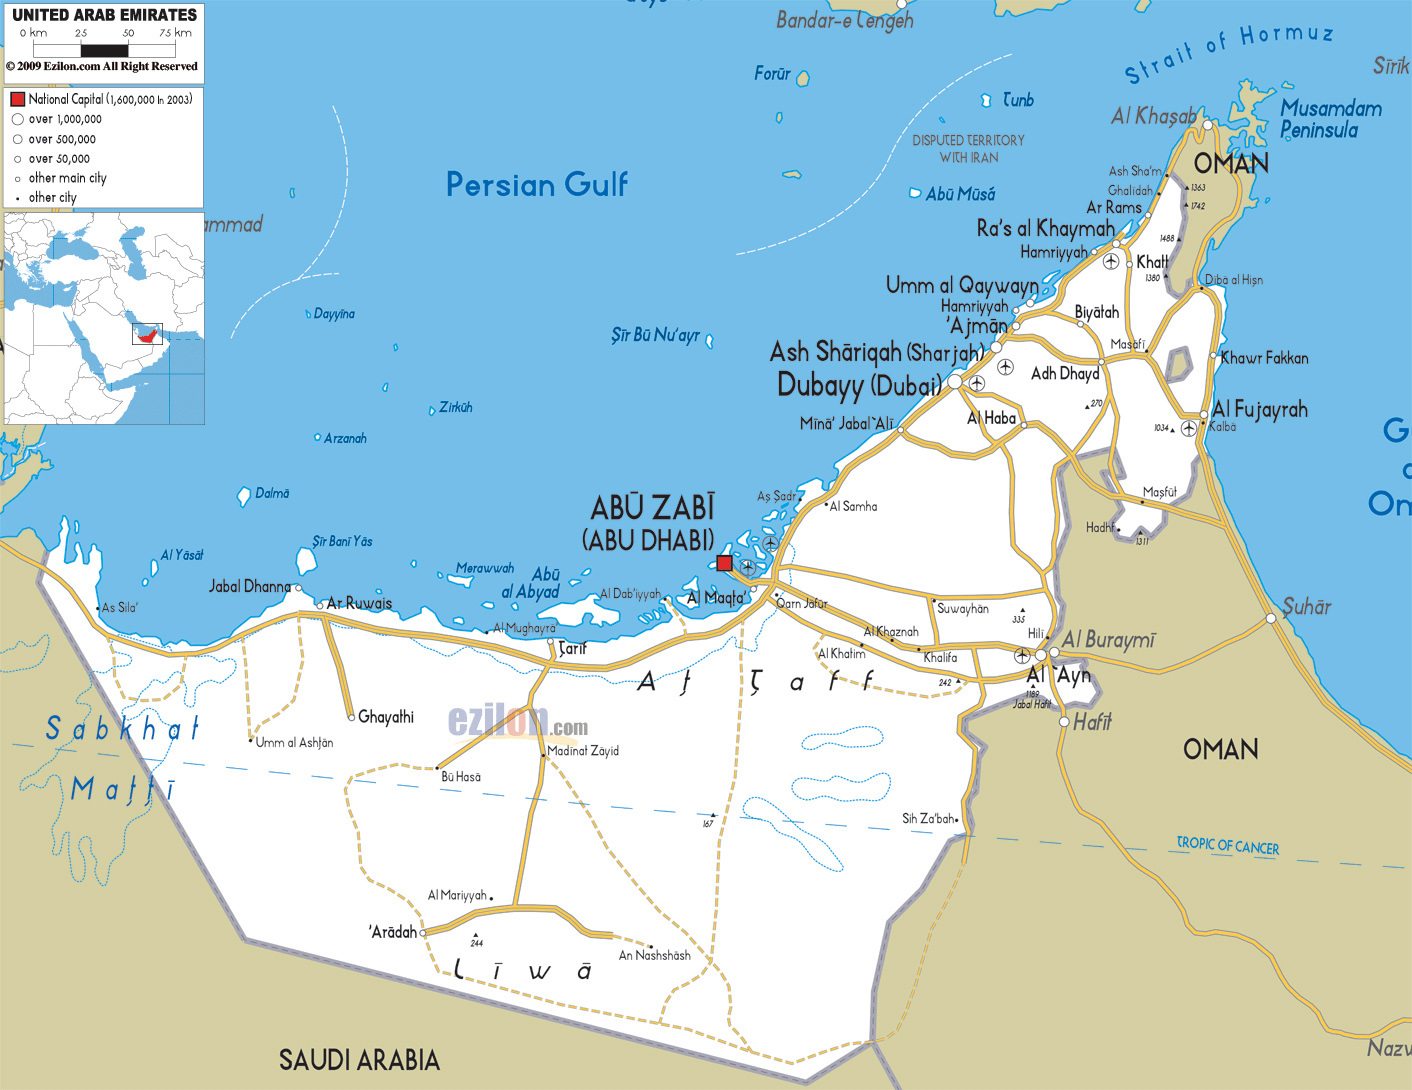 Detailed road and administrative map of UAE United Arab Emirates